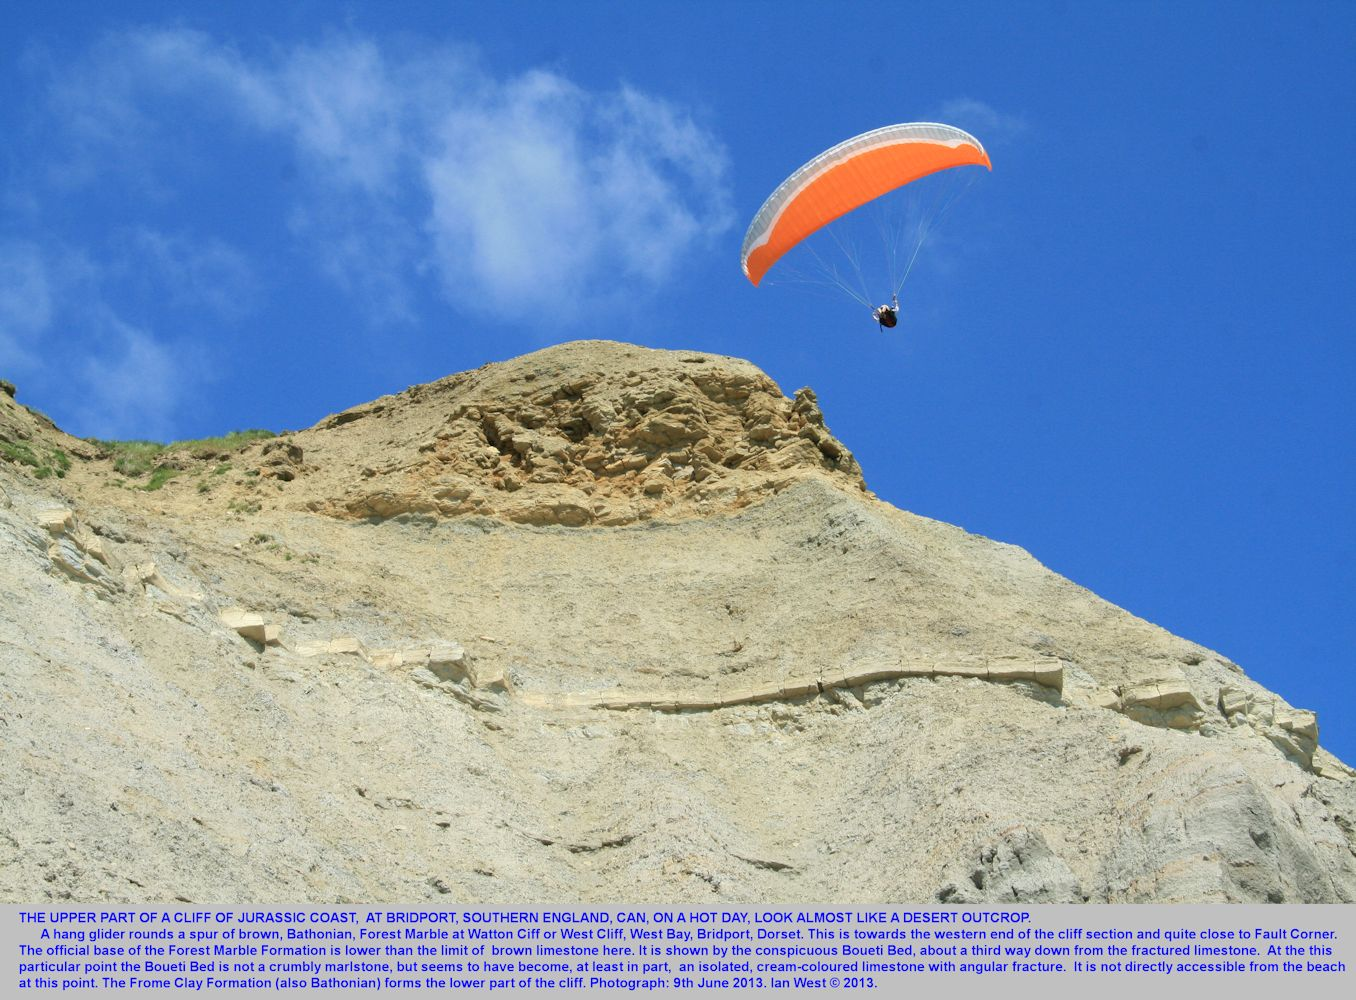 A hang glider passing a Forest Marble spur at Watton Cliff, West Bay, Bridport, Dorset, 9th June 2013